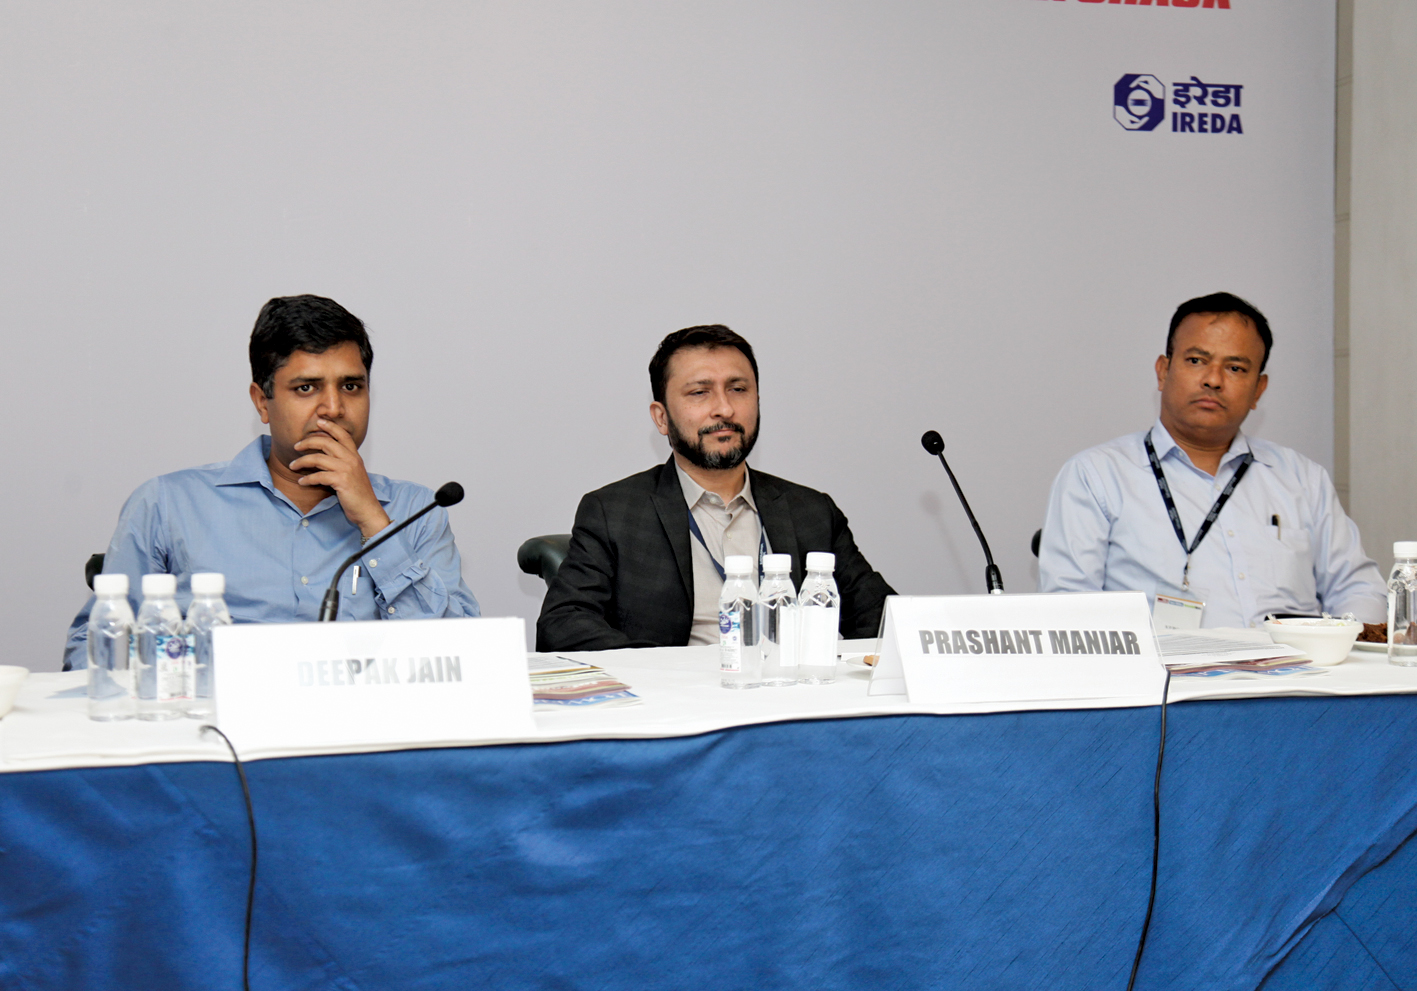 Deepak Jain, Deputy General Manager, PFC; Prashant Maniar, Managing Partner, Encito Advisors; and K.P. Philip, Assistant General Manager, IREDA, at Renewable Watch's conference on Waste to Energy